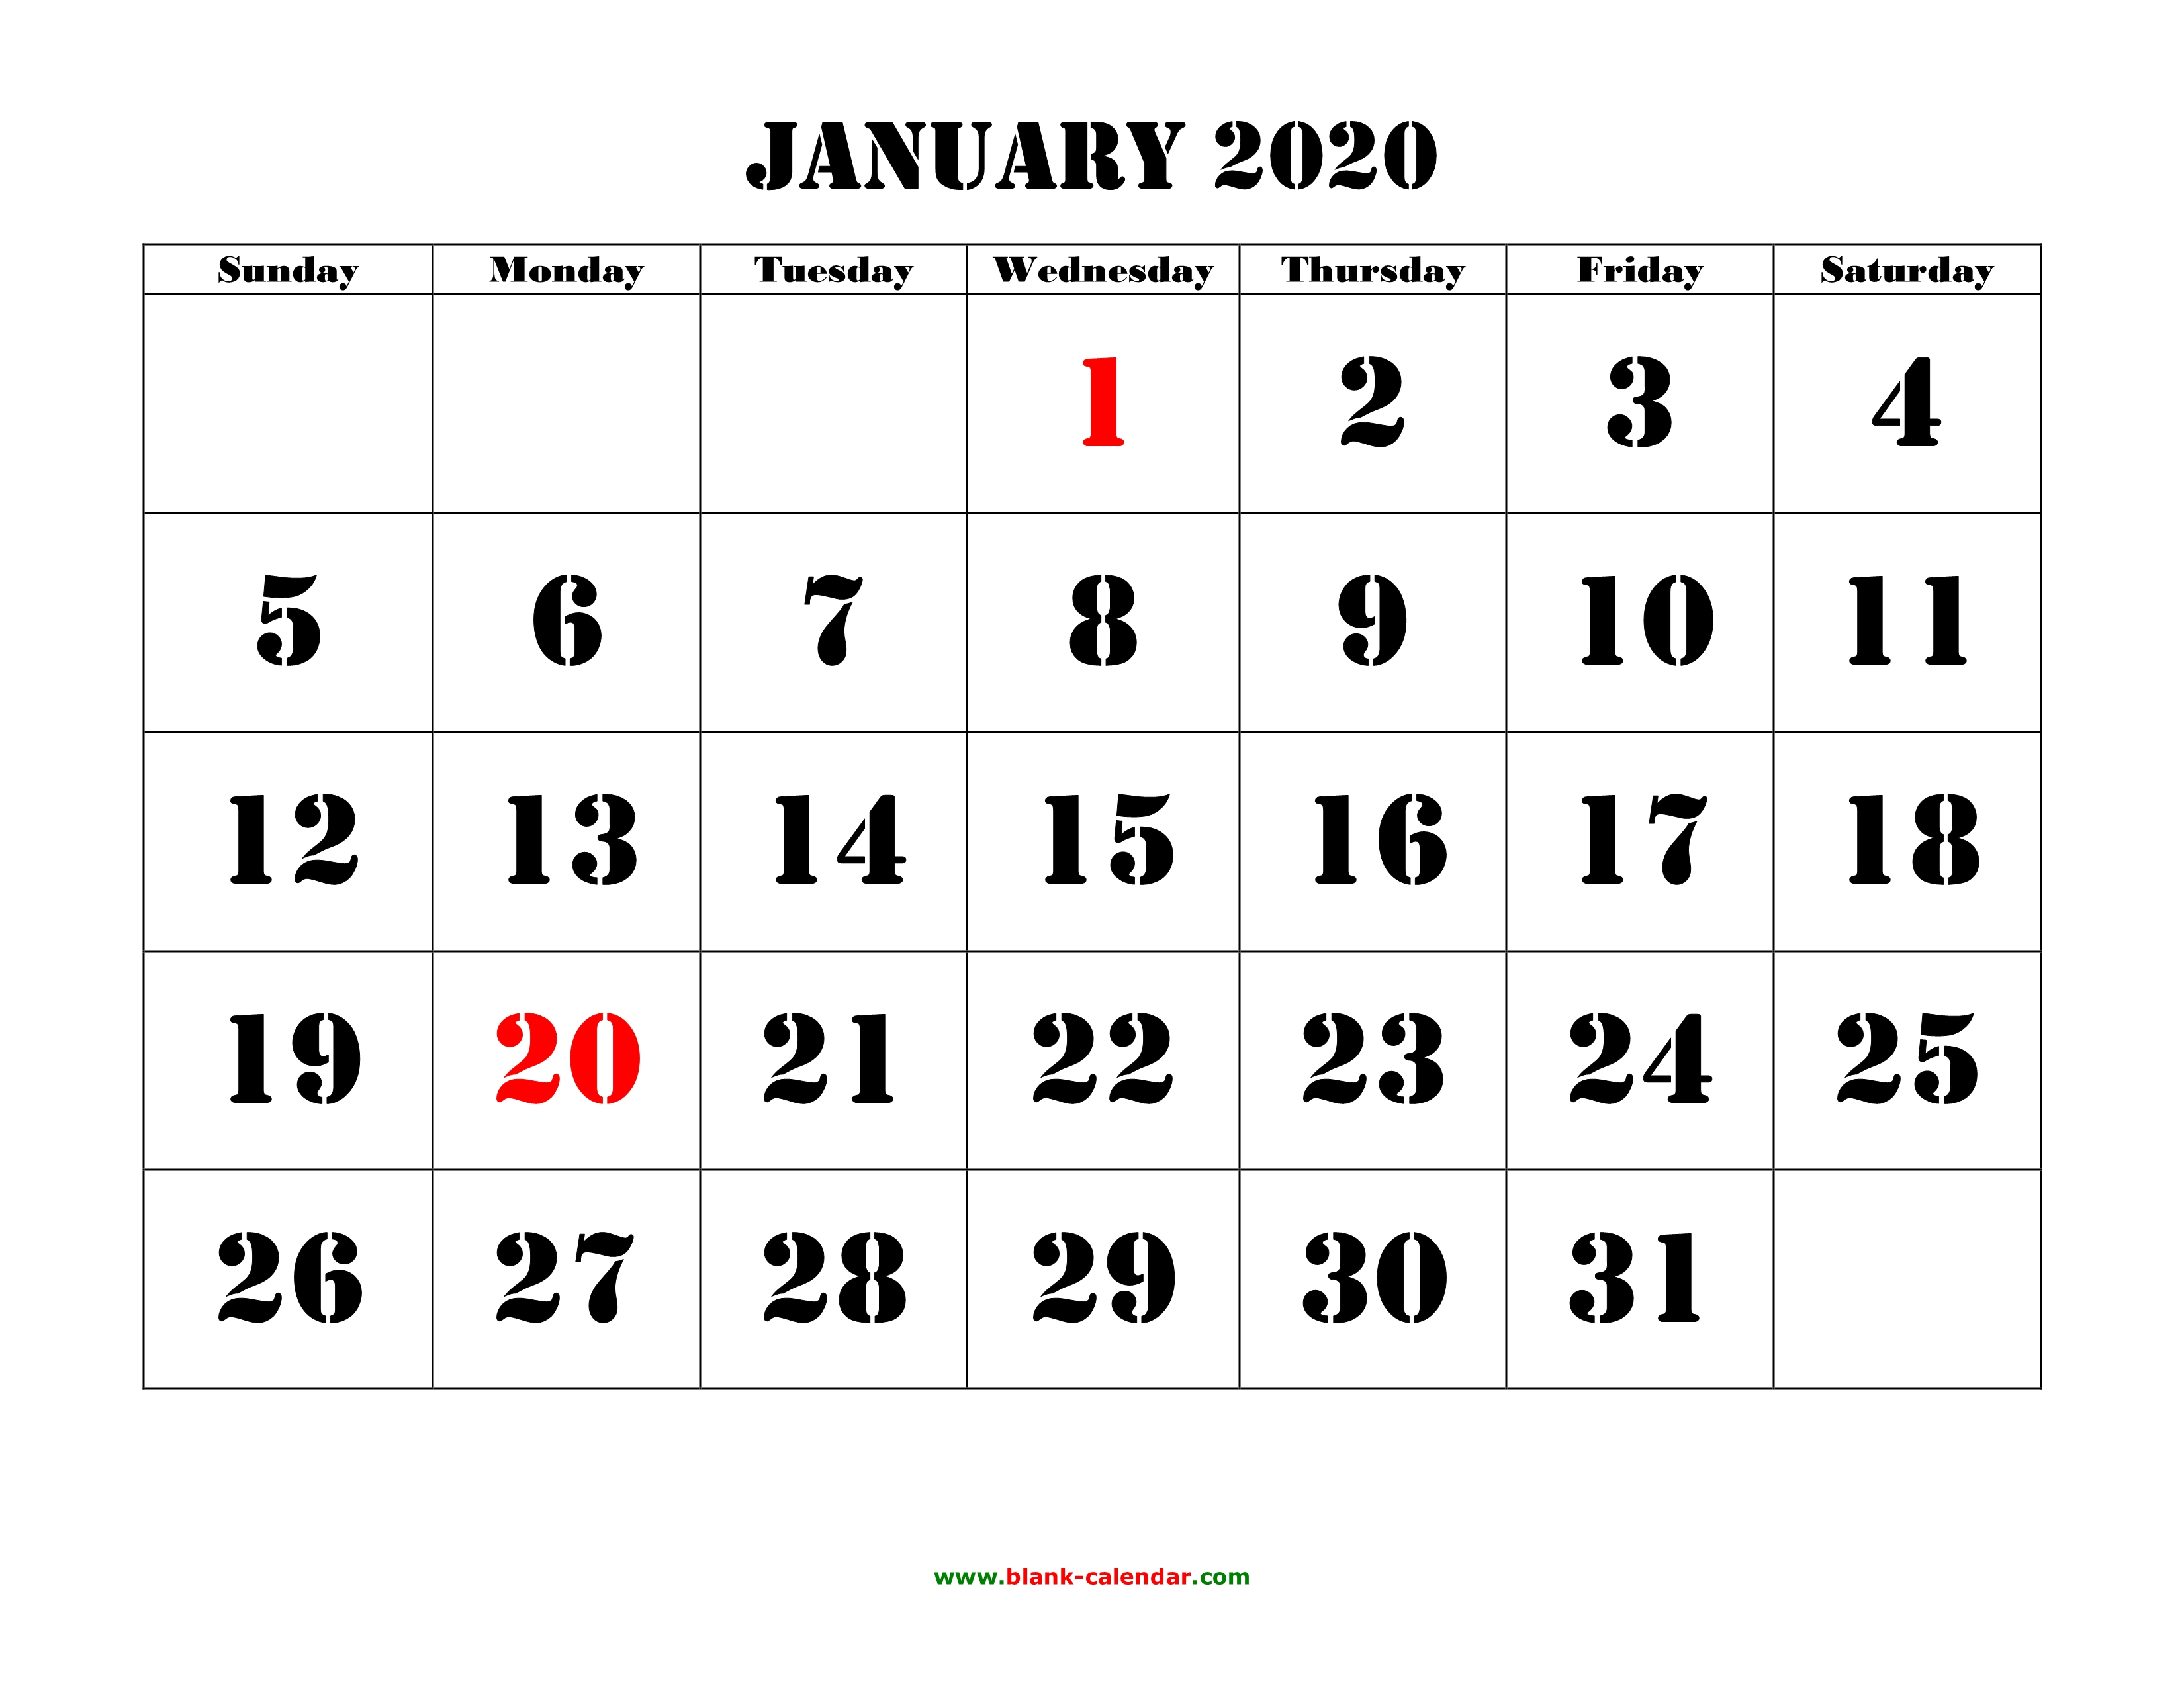 Printable Calendar 2020 | Free Download Yearly Calendar Templates with Monthly Printable Calendars 2020 Half Page